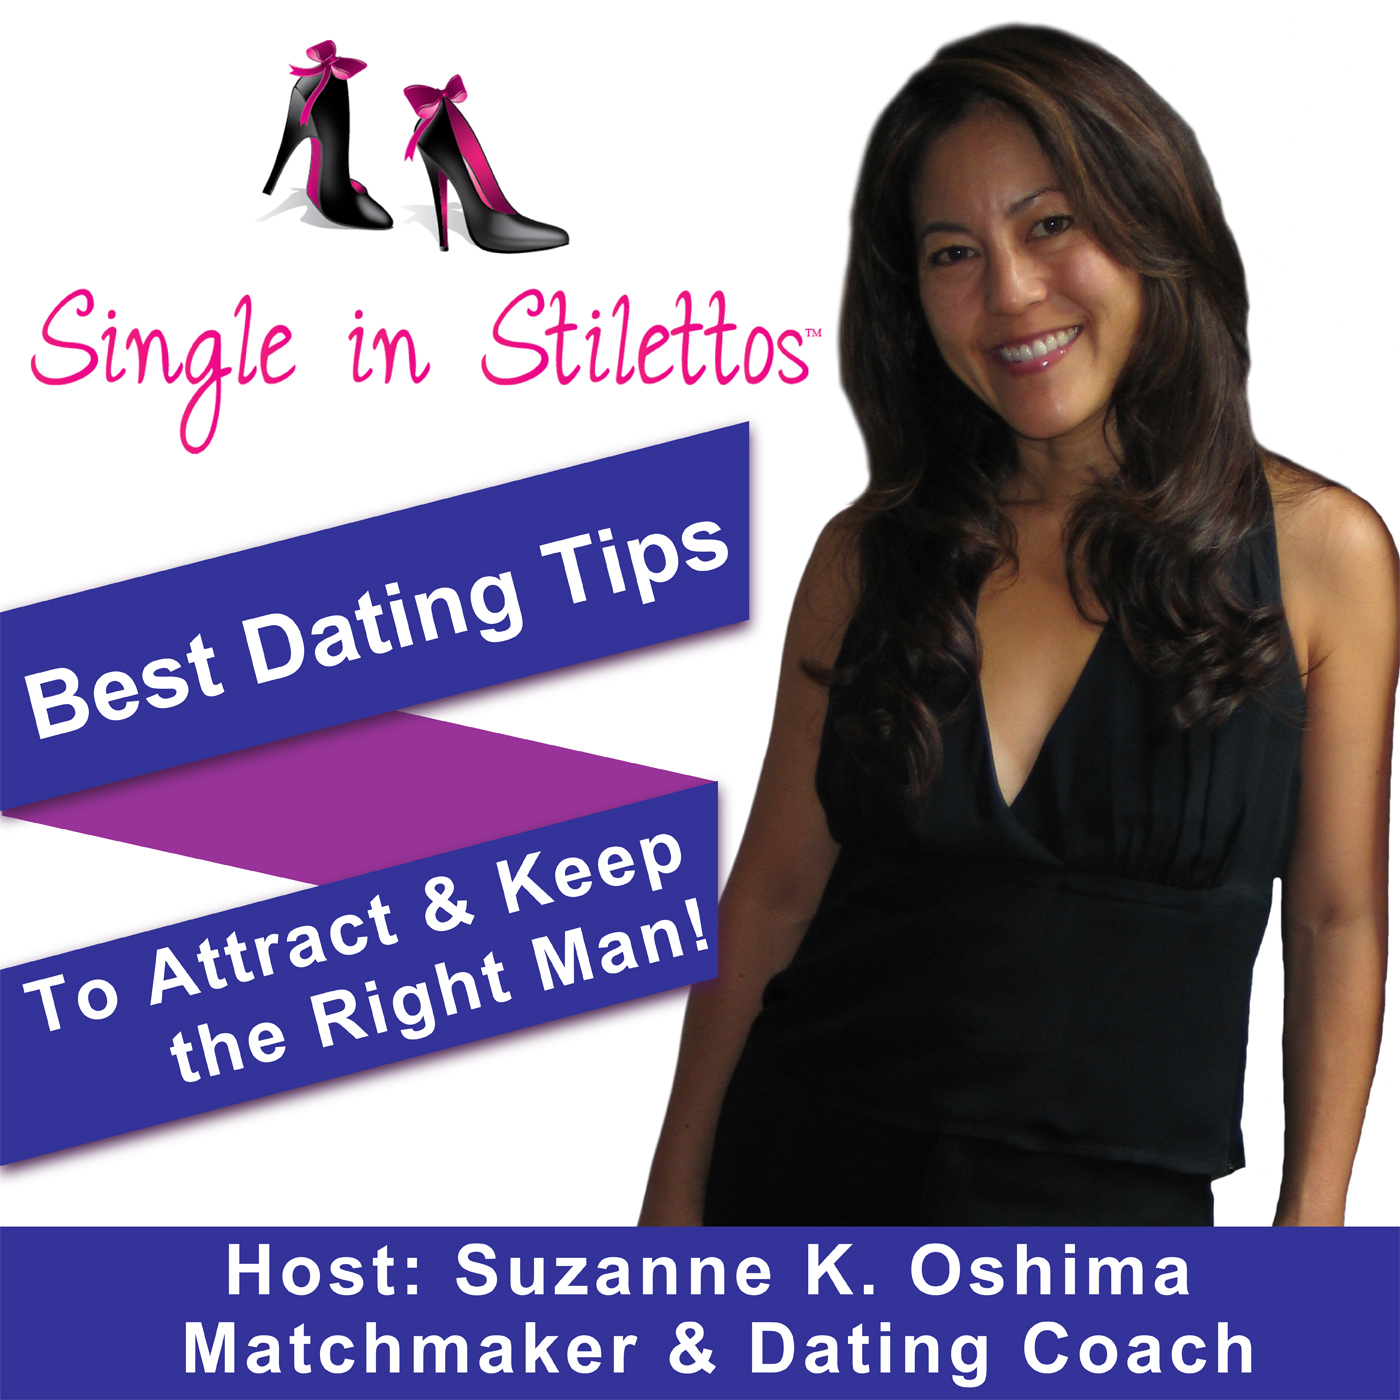 fisk divorced singles personals Sign up for free to dating site cupid browse local singles, start chatting now we have a large database of singles waiting for you community speed dating event 12 april 2014 at the the aim of the community speed dating event is to allow the 12.